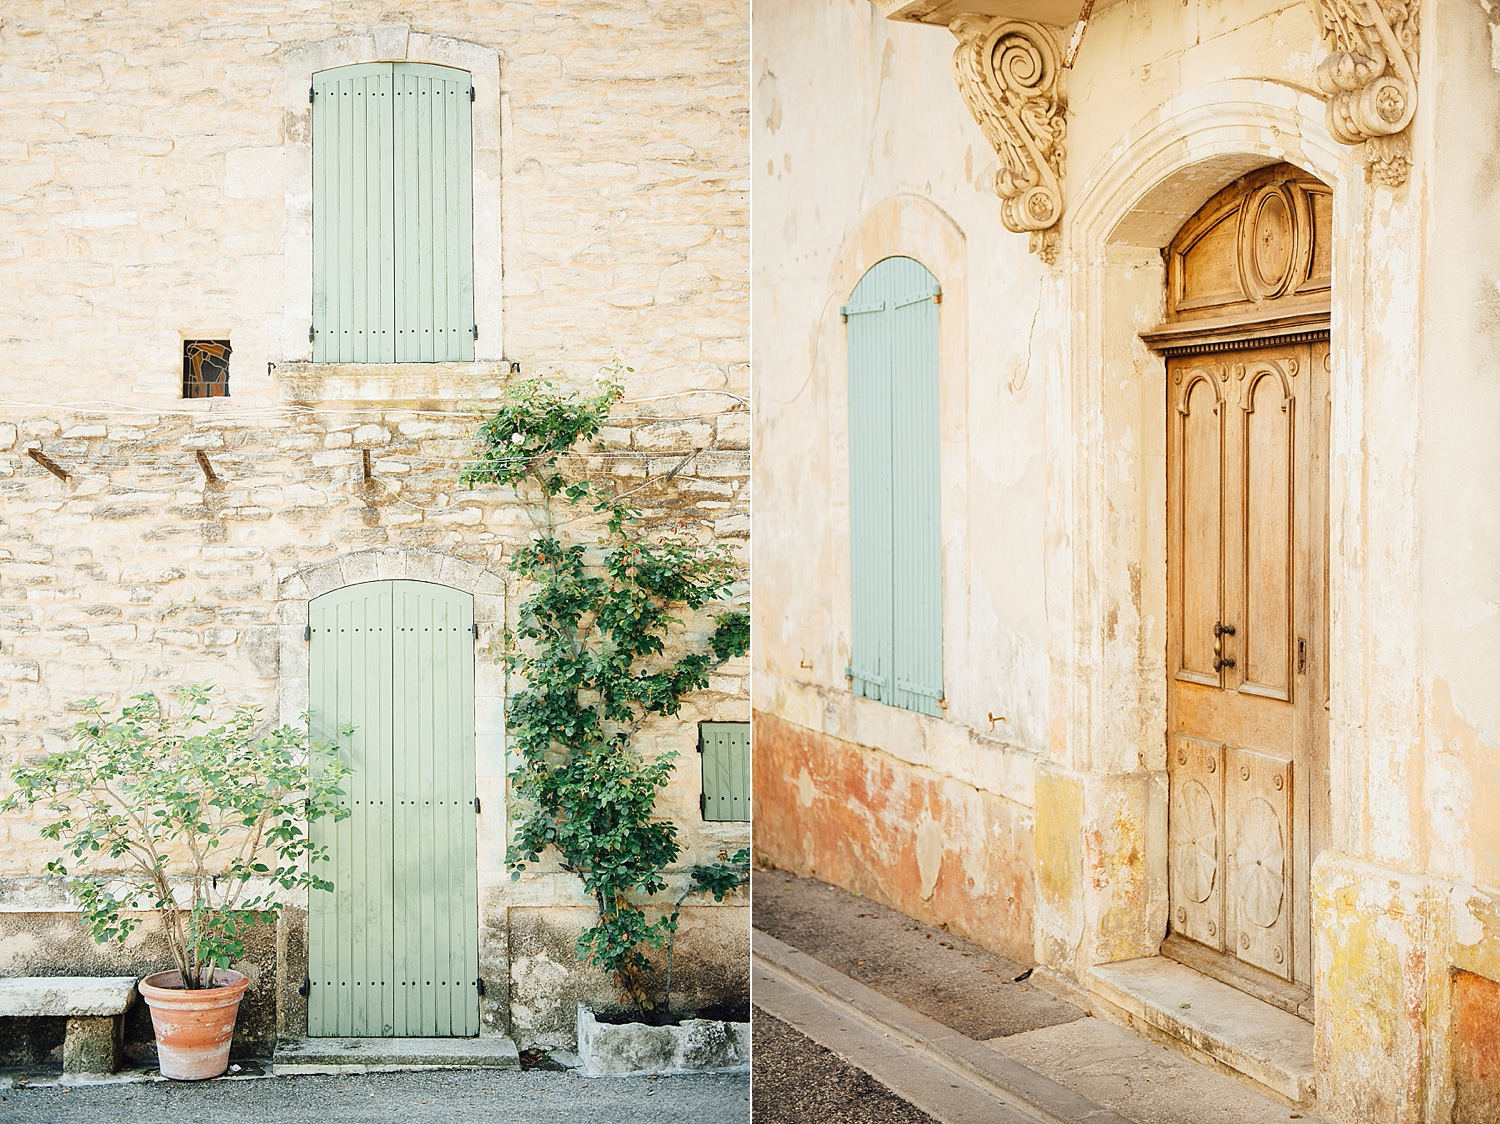 Katie_Mitchell_Photography_Provence_Travel_Photography_Gordes_06.jpg